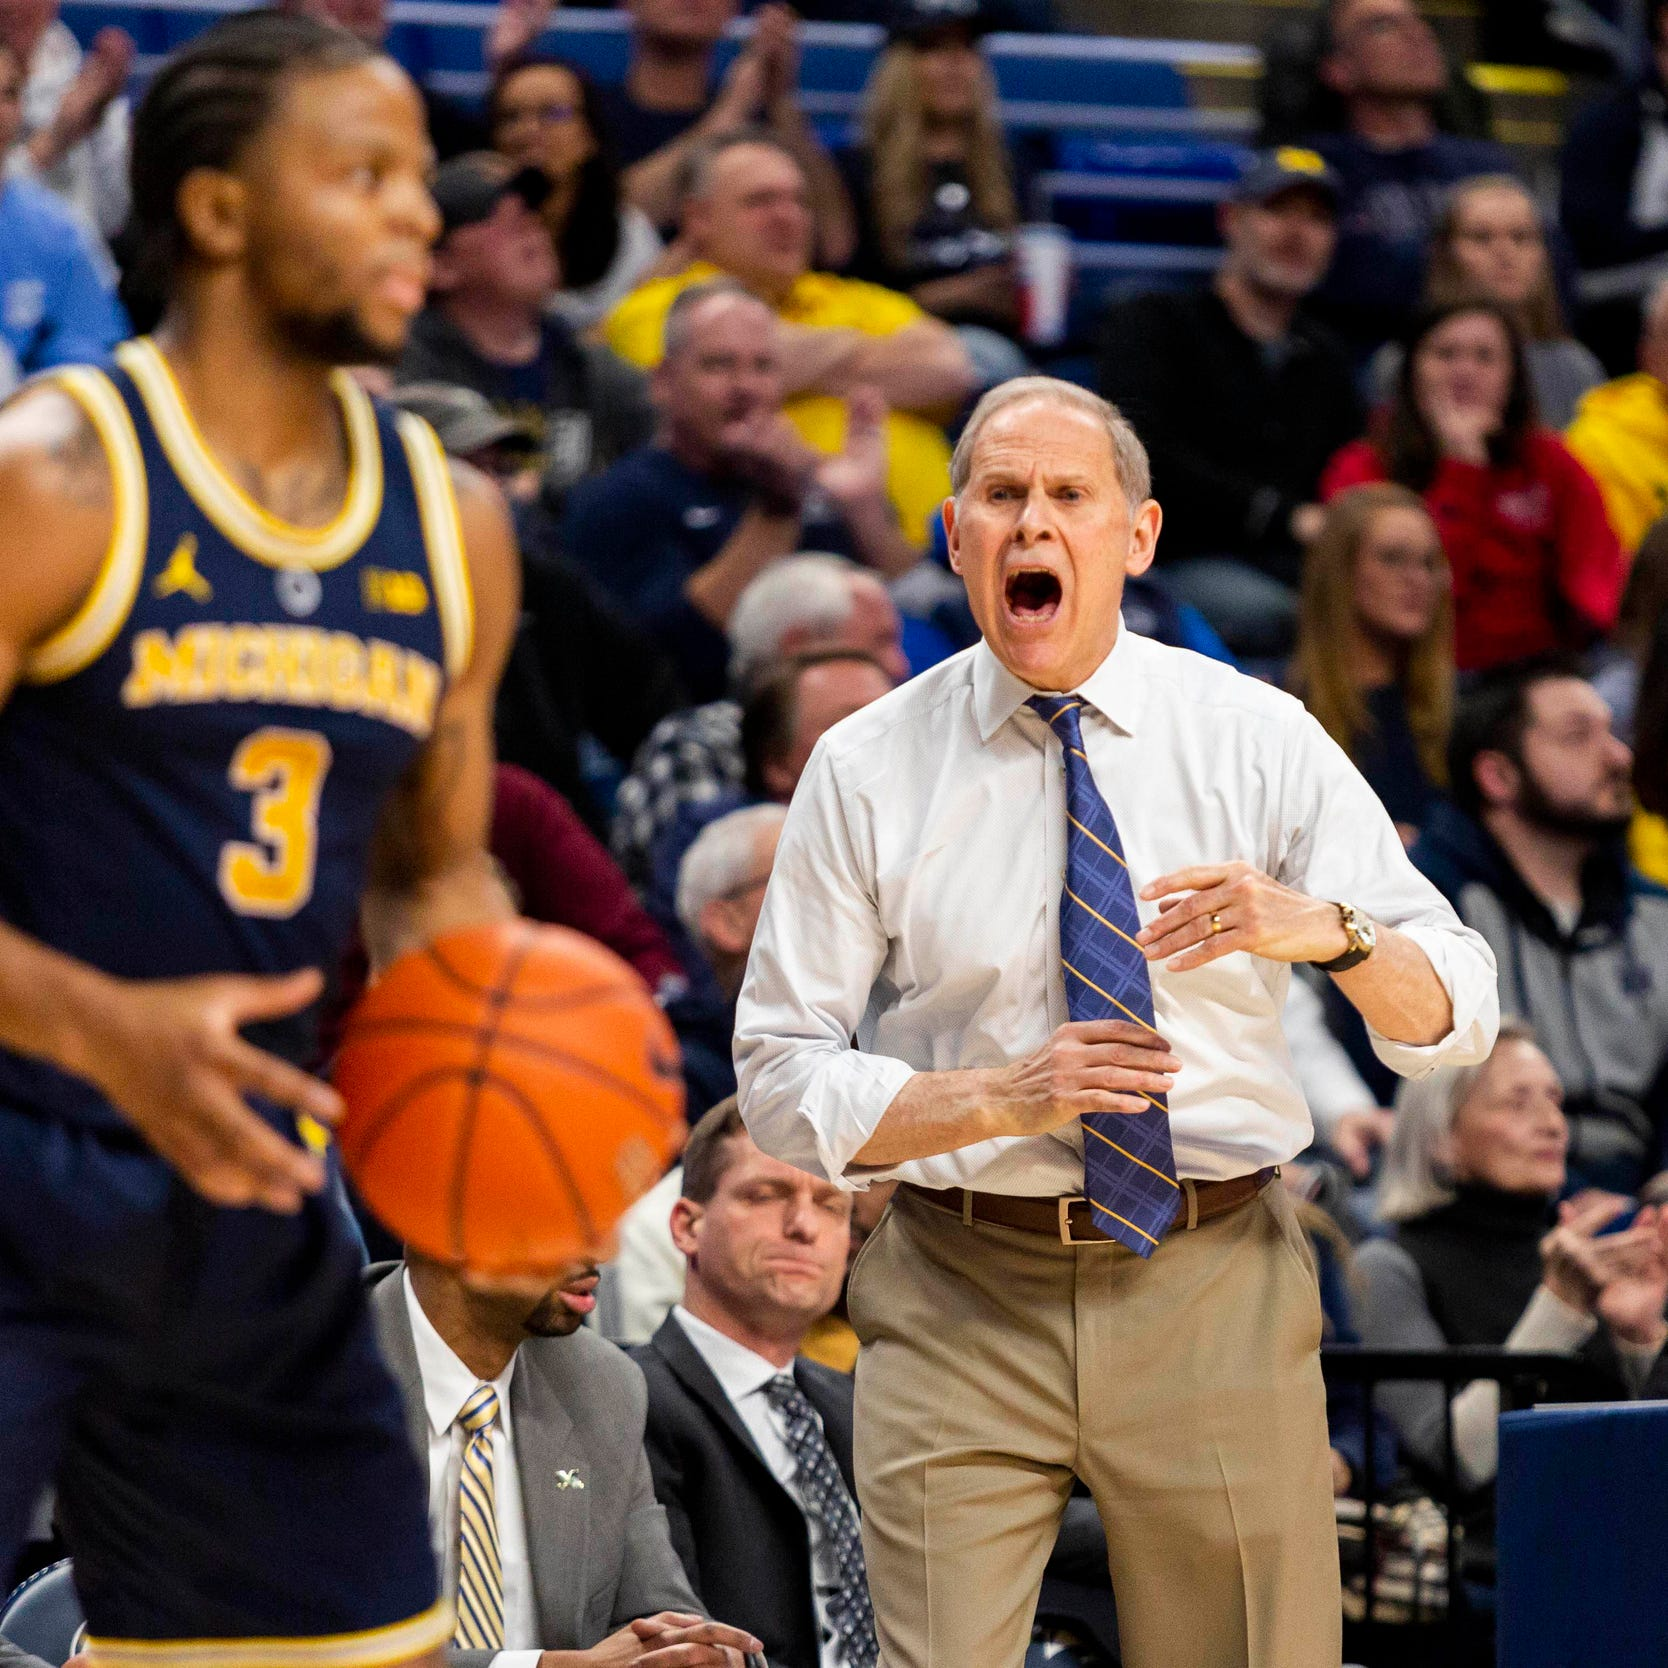 There's hope for Michigan basketball after Penn State debacle. Here's why